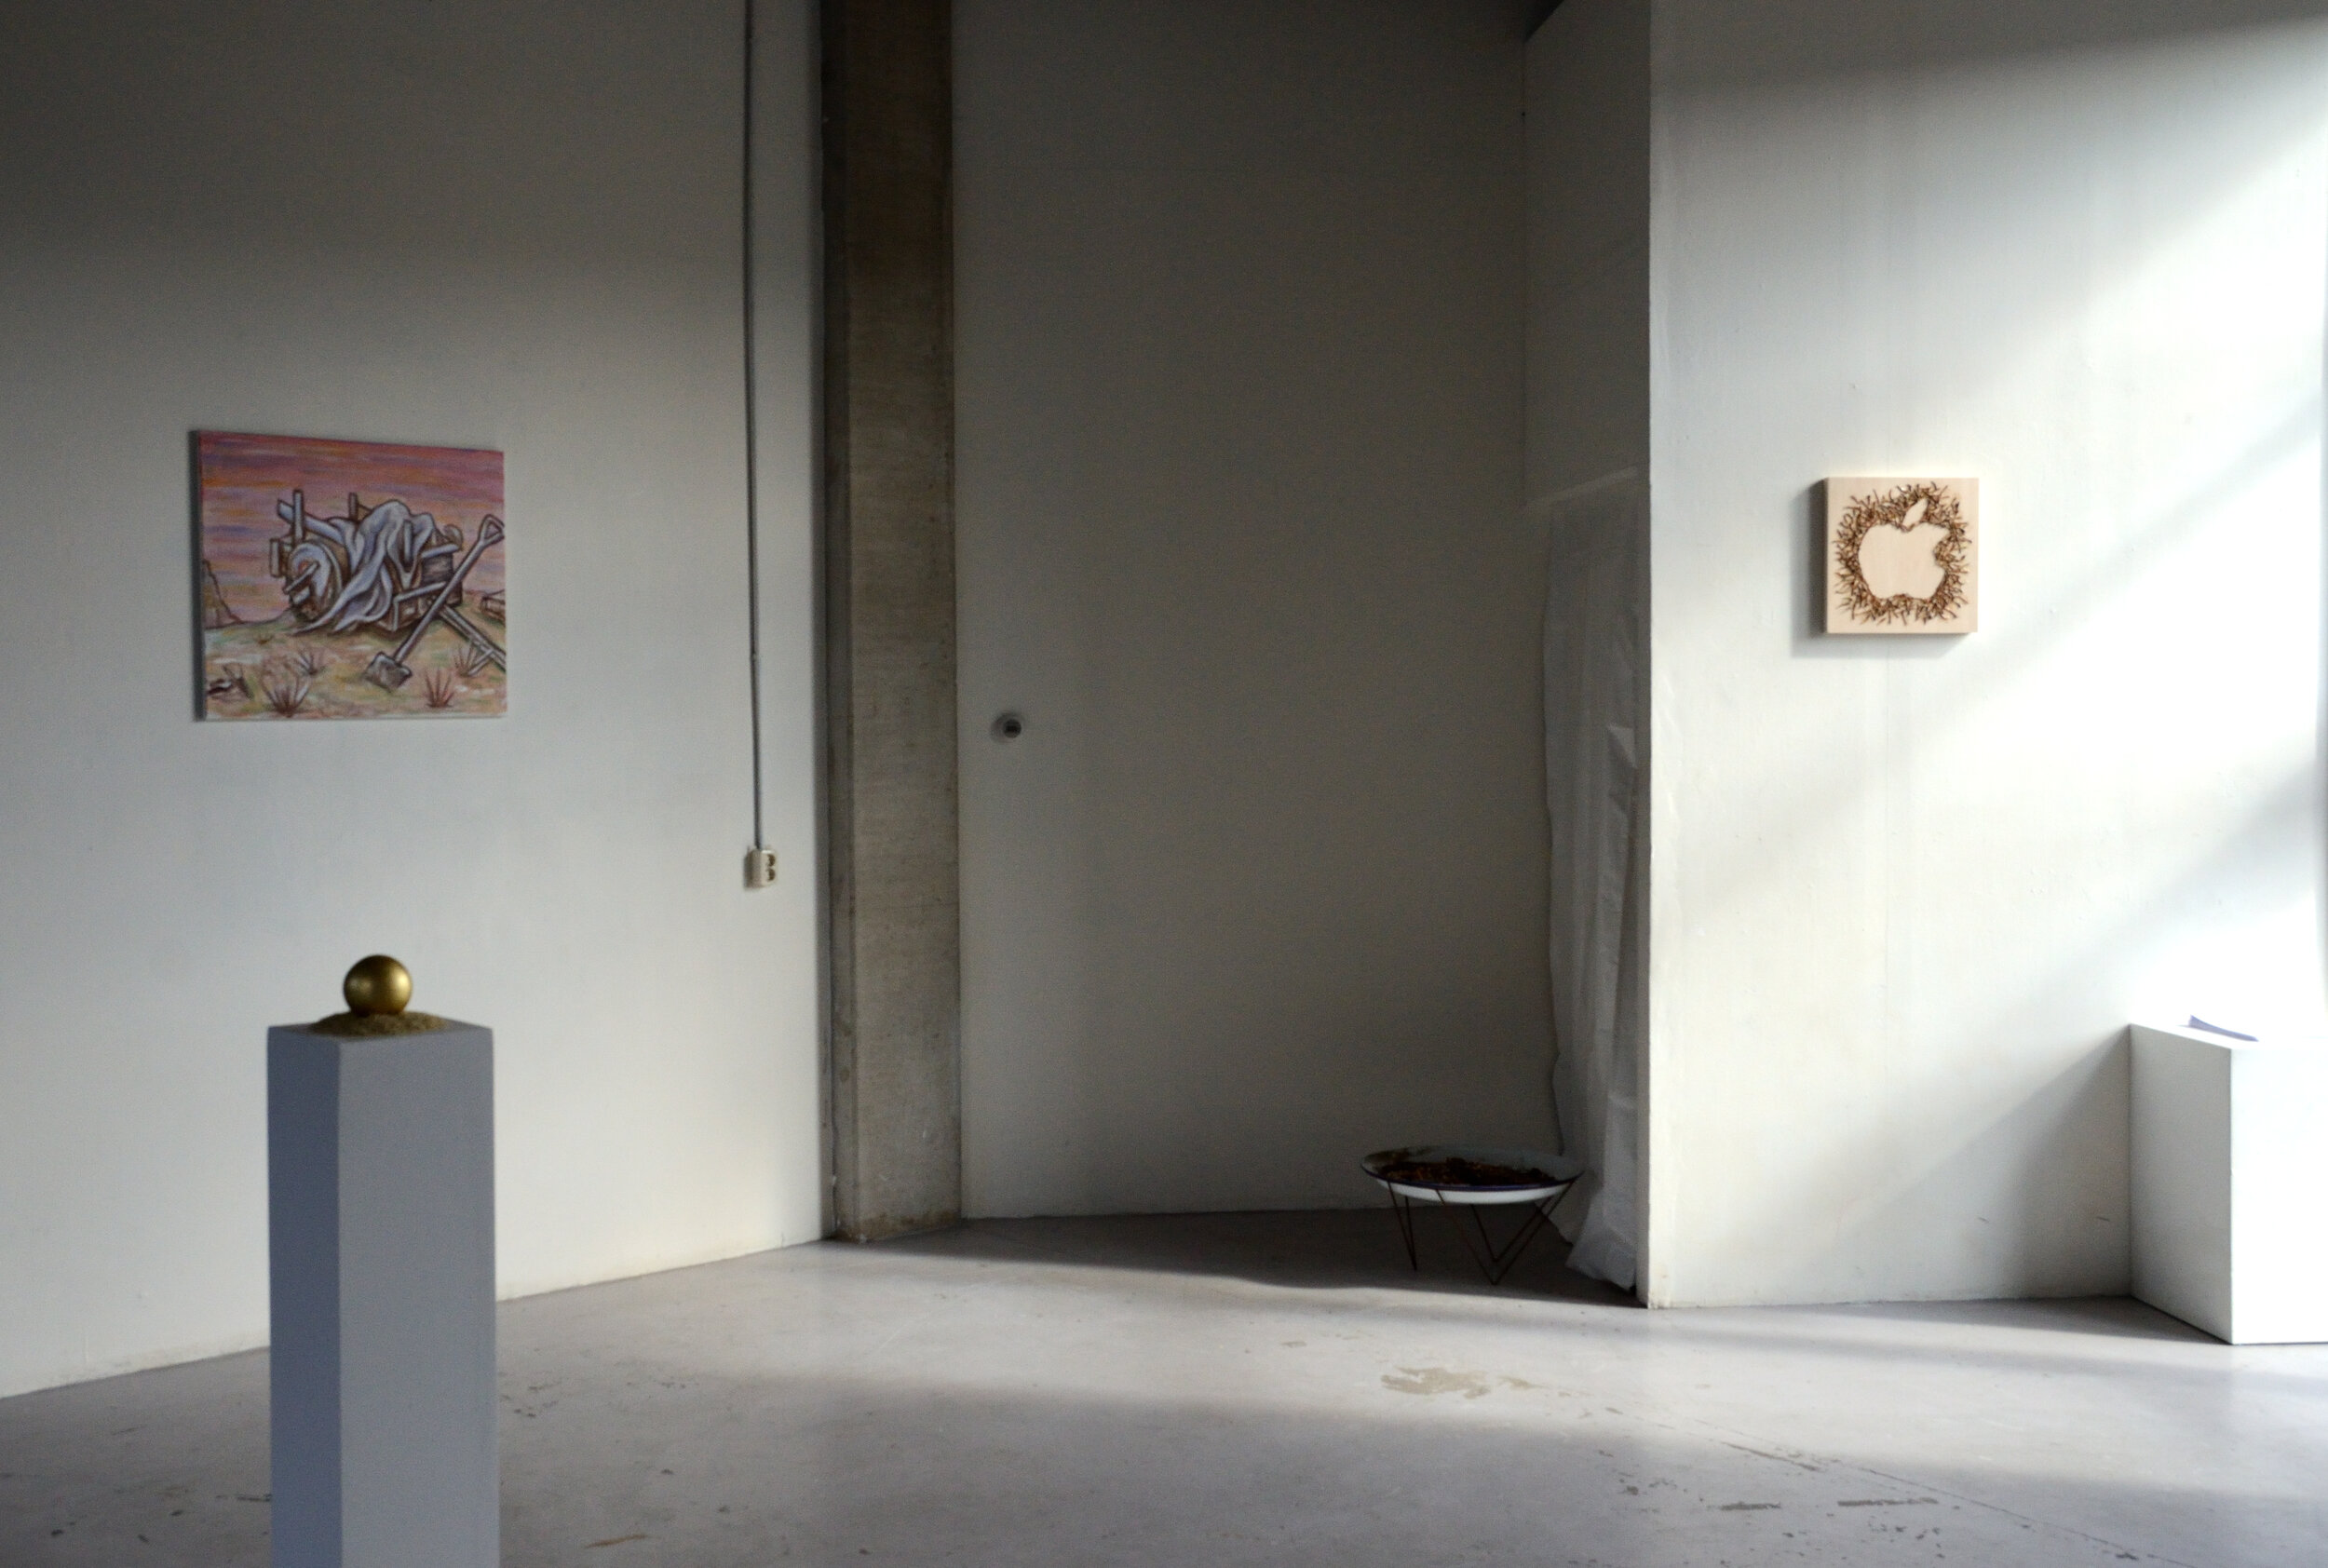 24. Exhibition overview 3 at NEVERNEVERLAND may 2019.JPG